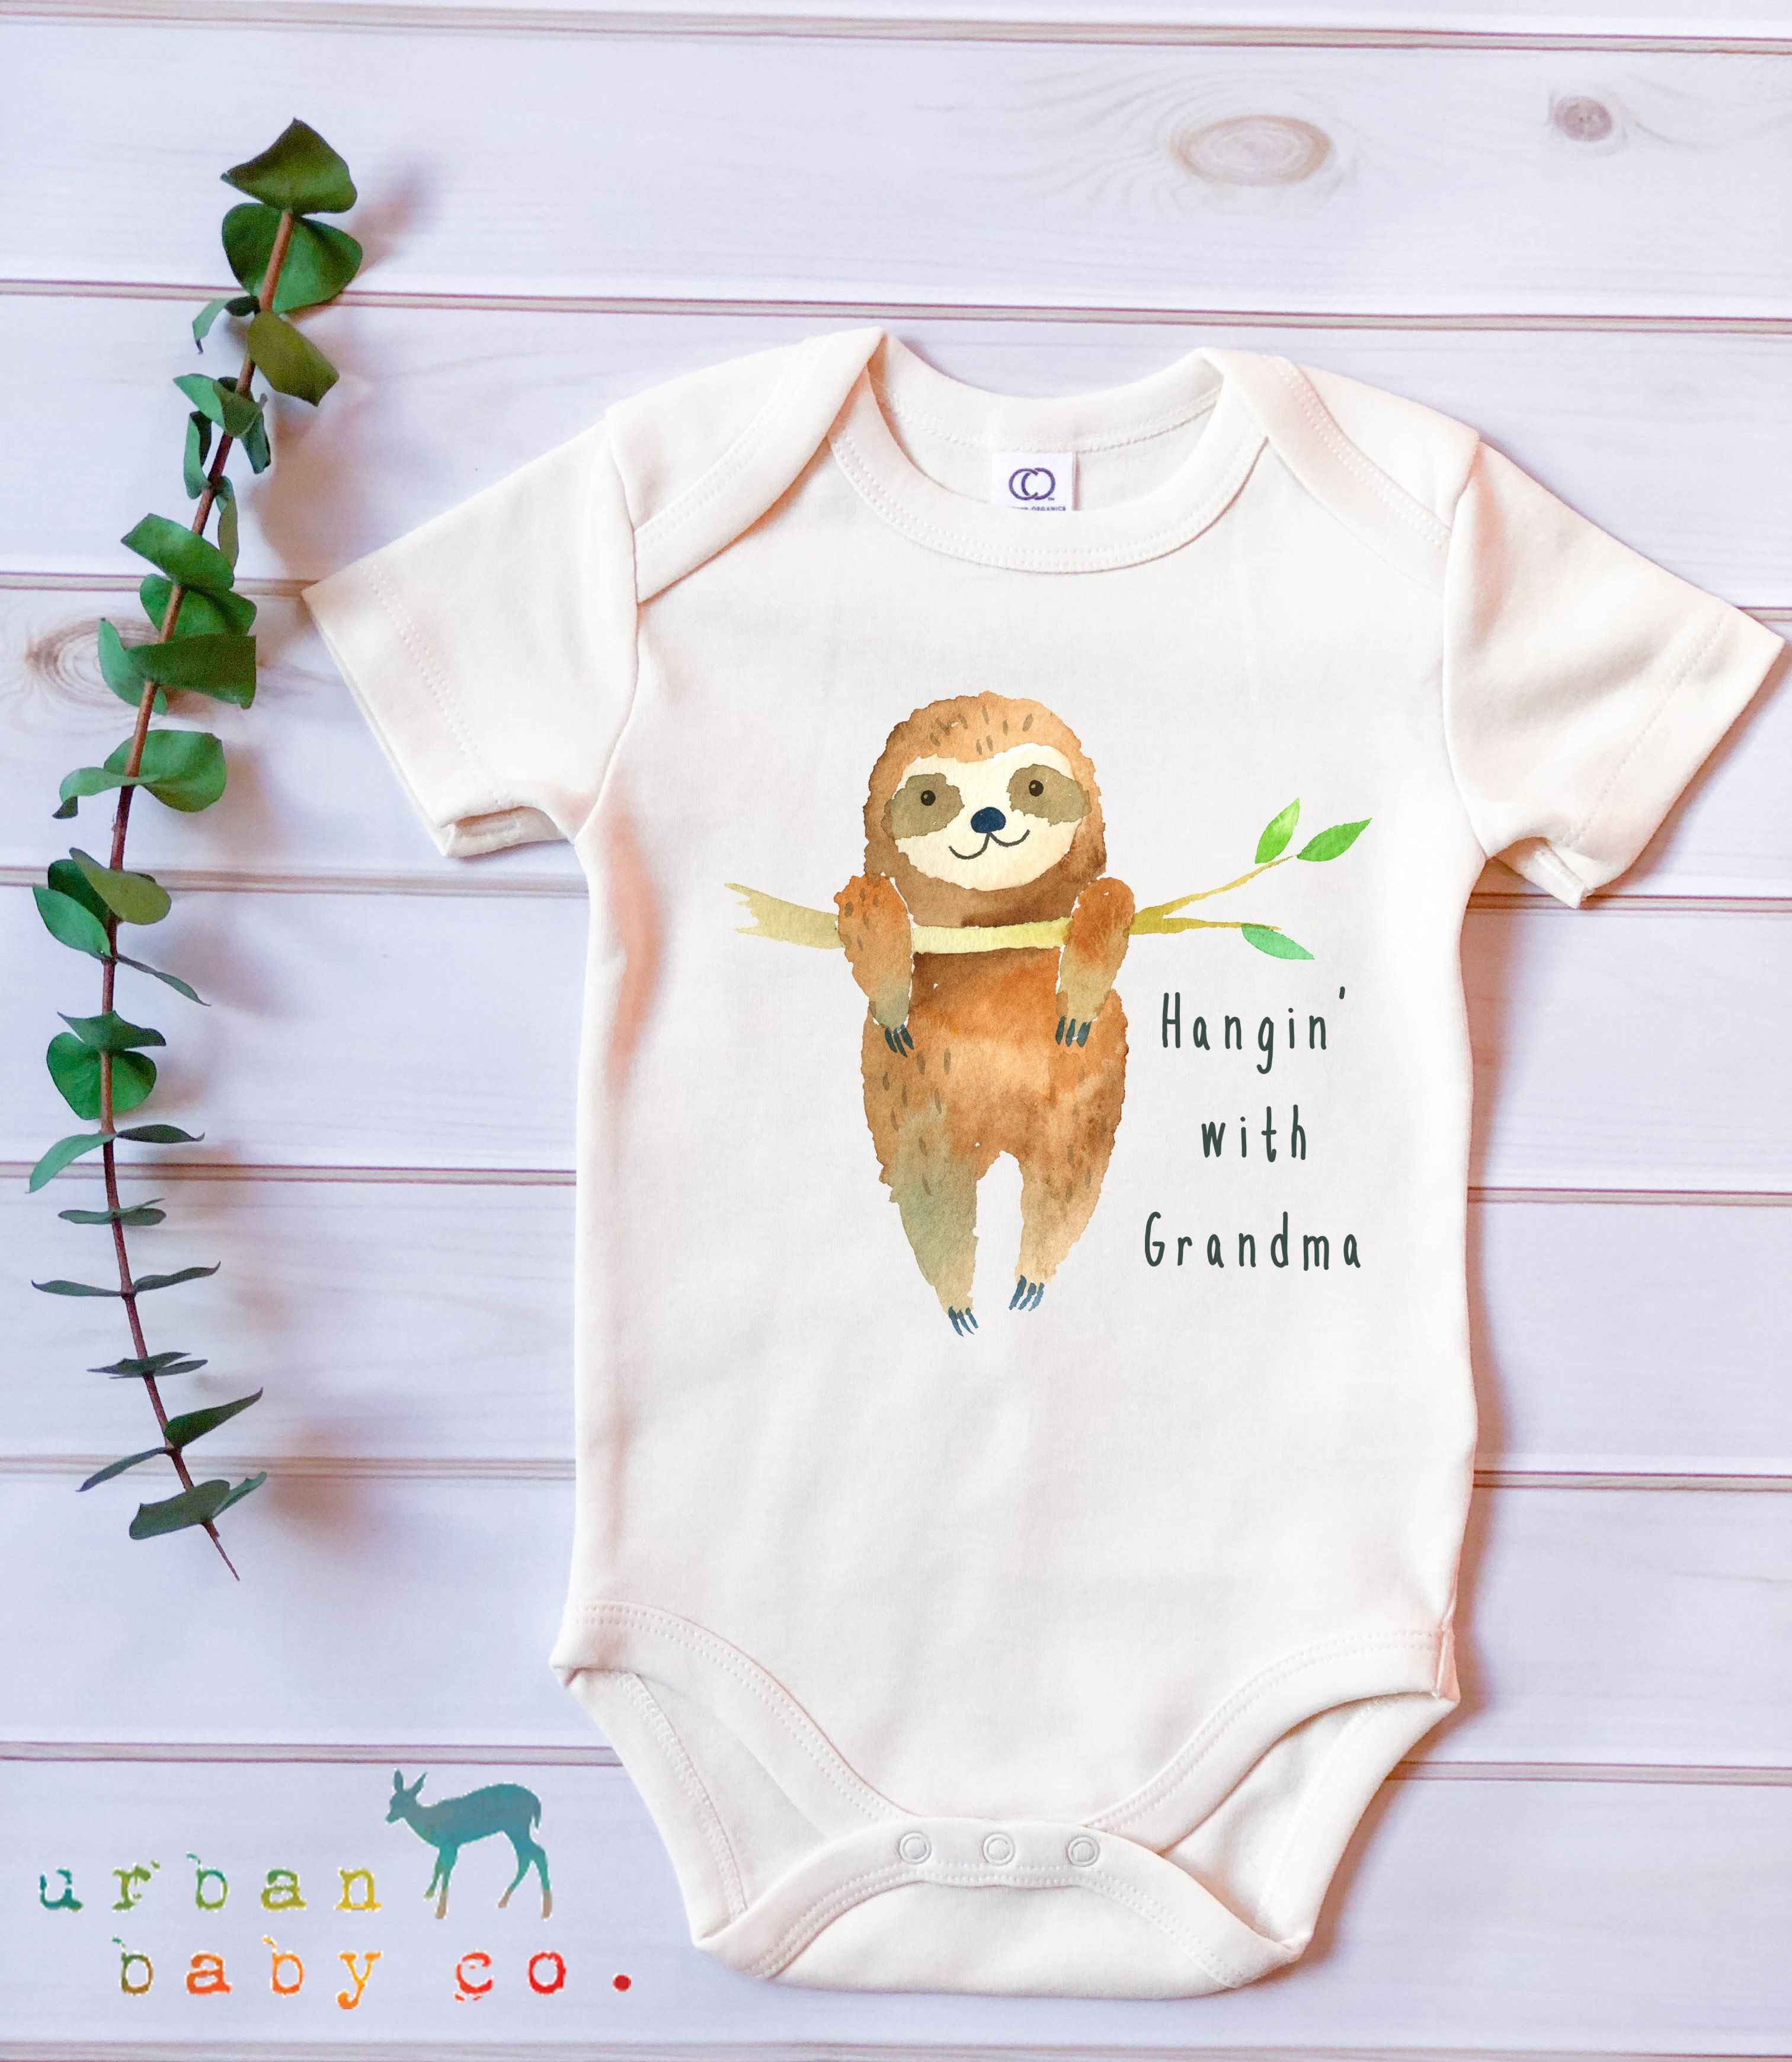 Baby Bodysuit Baby Clothes,Baby Sloth,Cute Baby Outfit Baby Christmas Gift